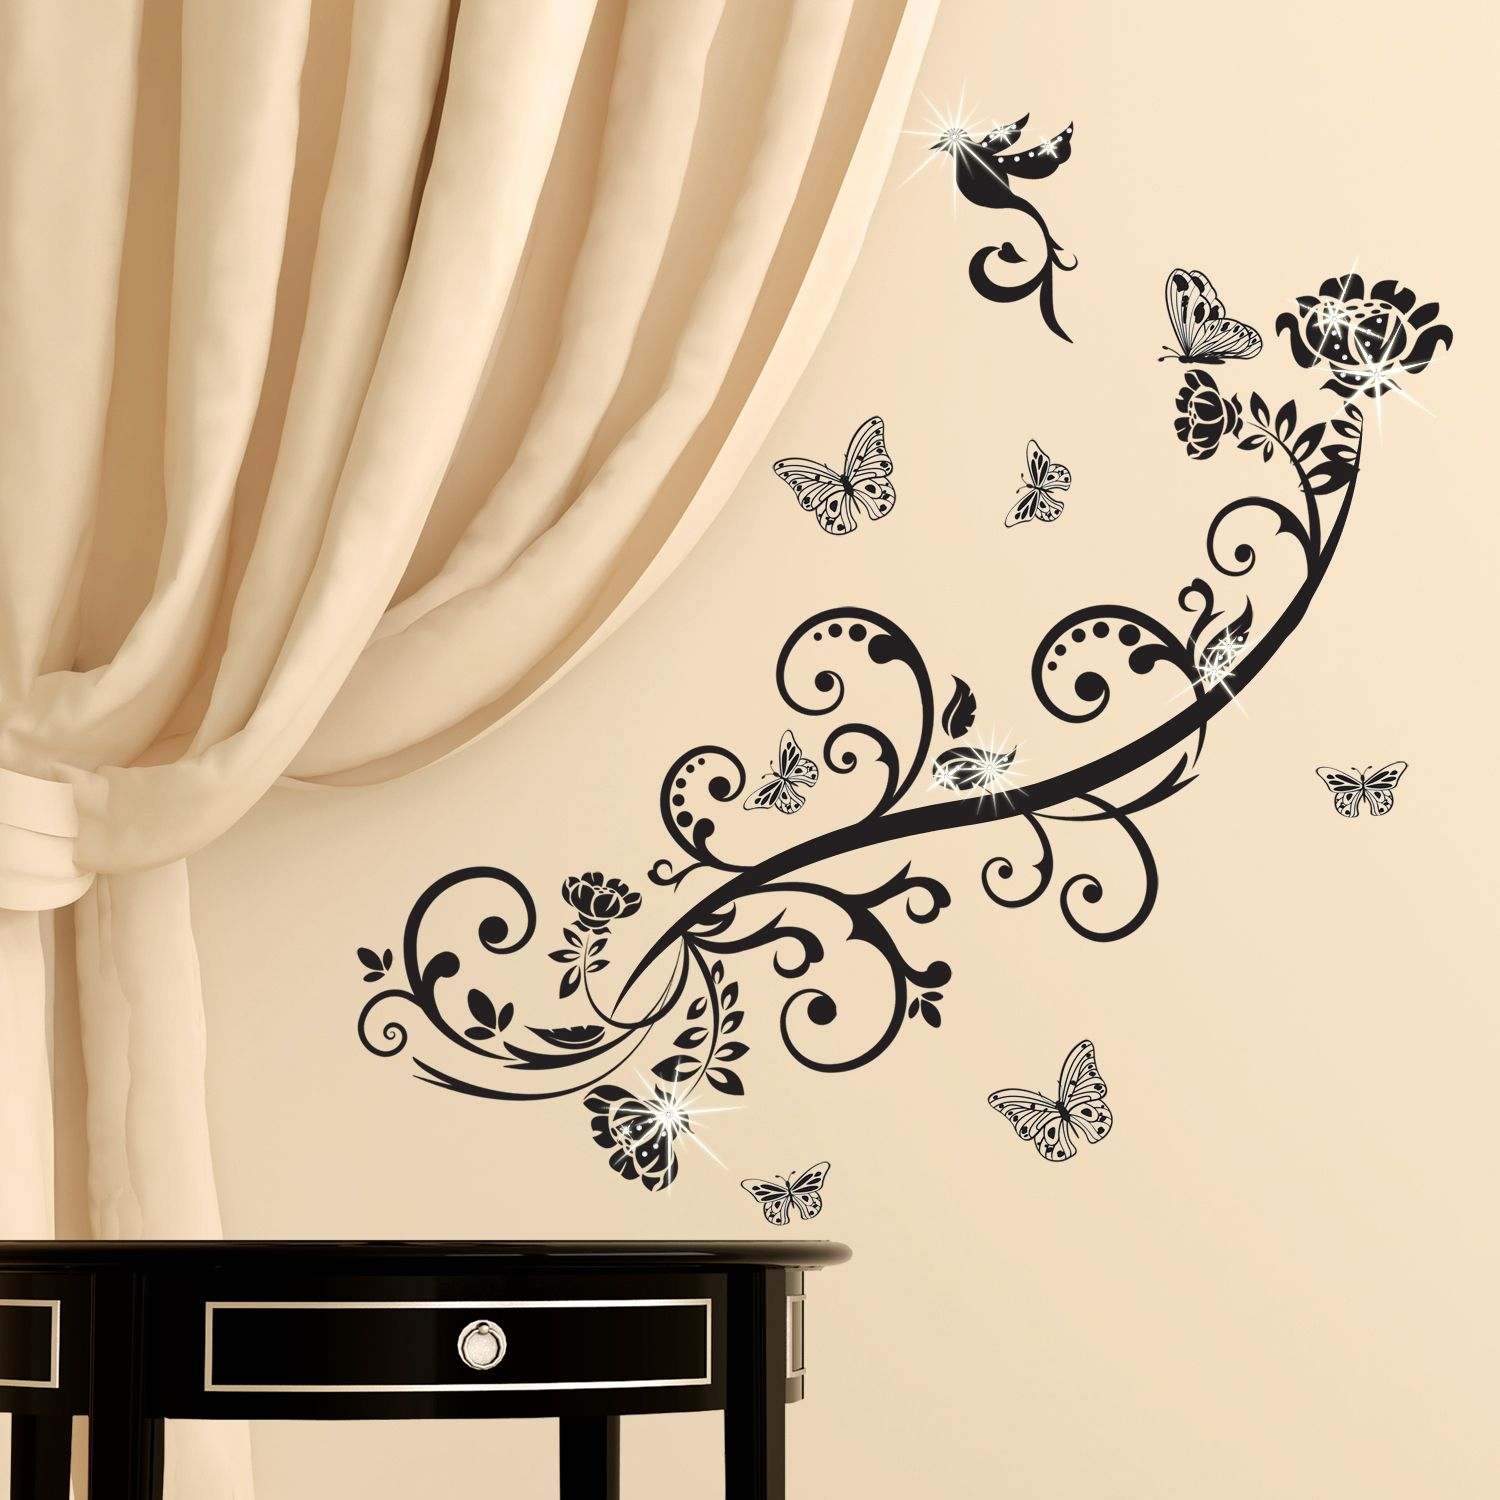 Walplus Wall Sticker Decal Wall Art Butterfly Vine with Swarovski Crystals